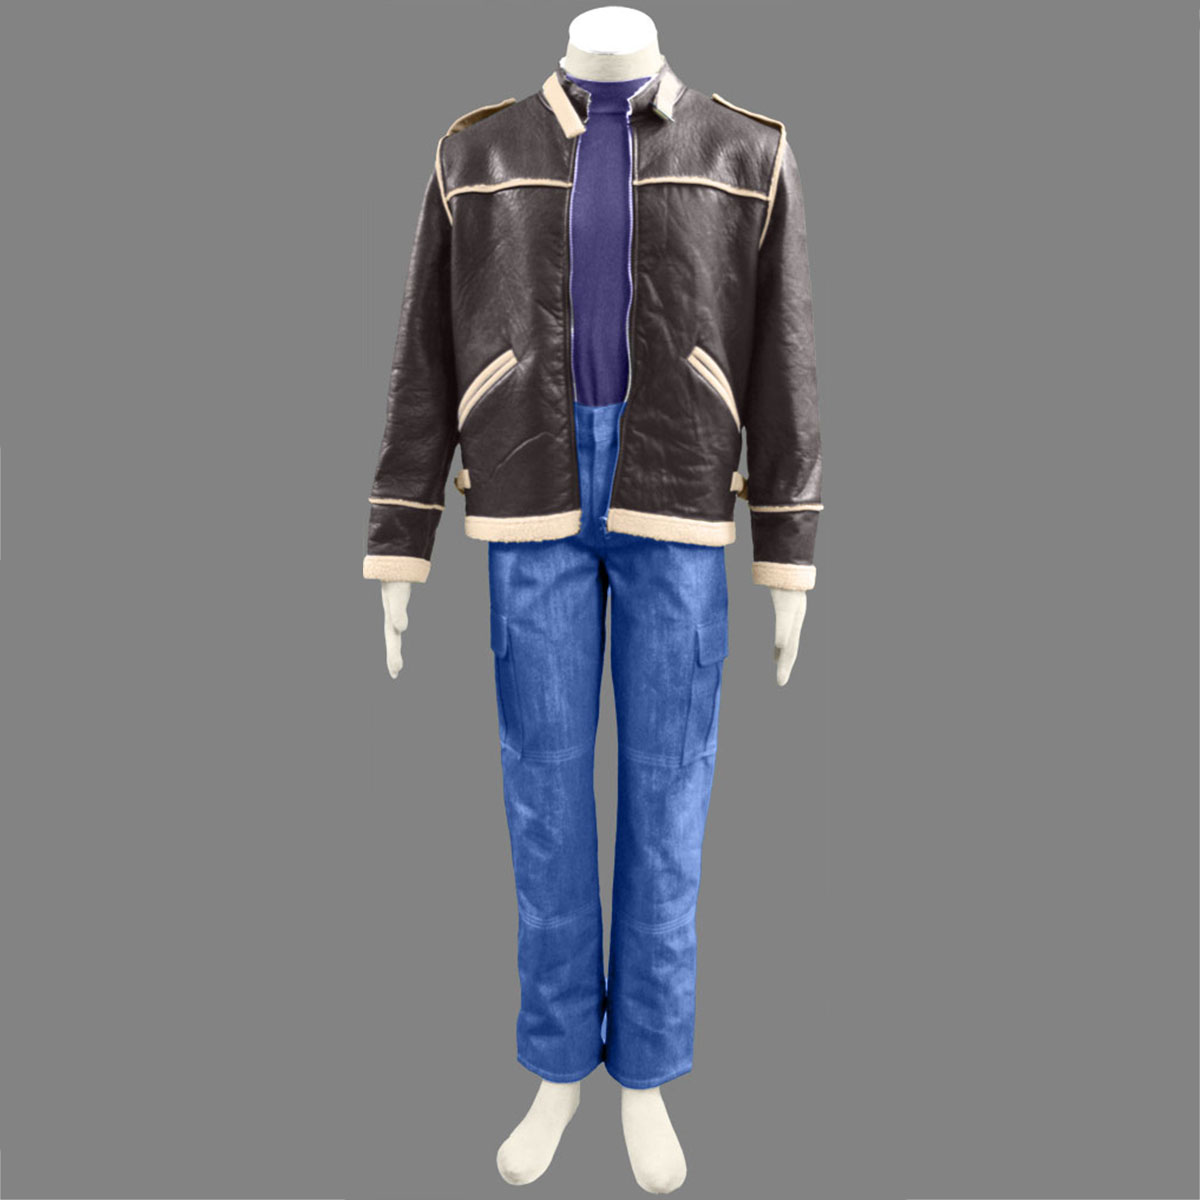 resident evil 4 leon s  kennedy cosplay costume resident evil 4 leon s  kennedy cosplay costume